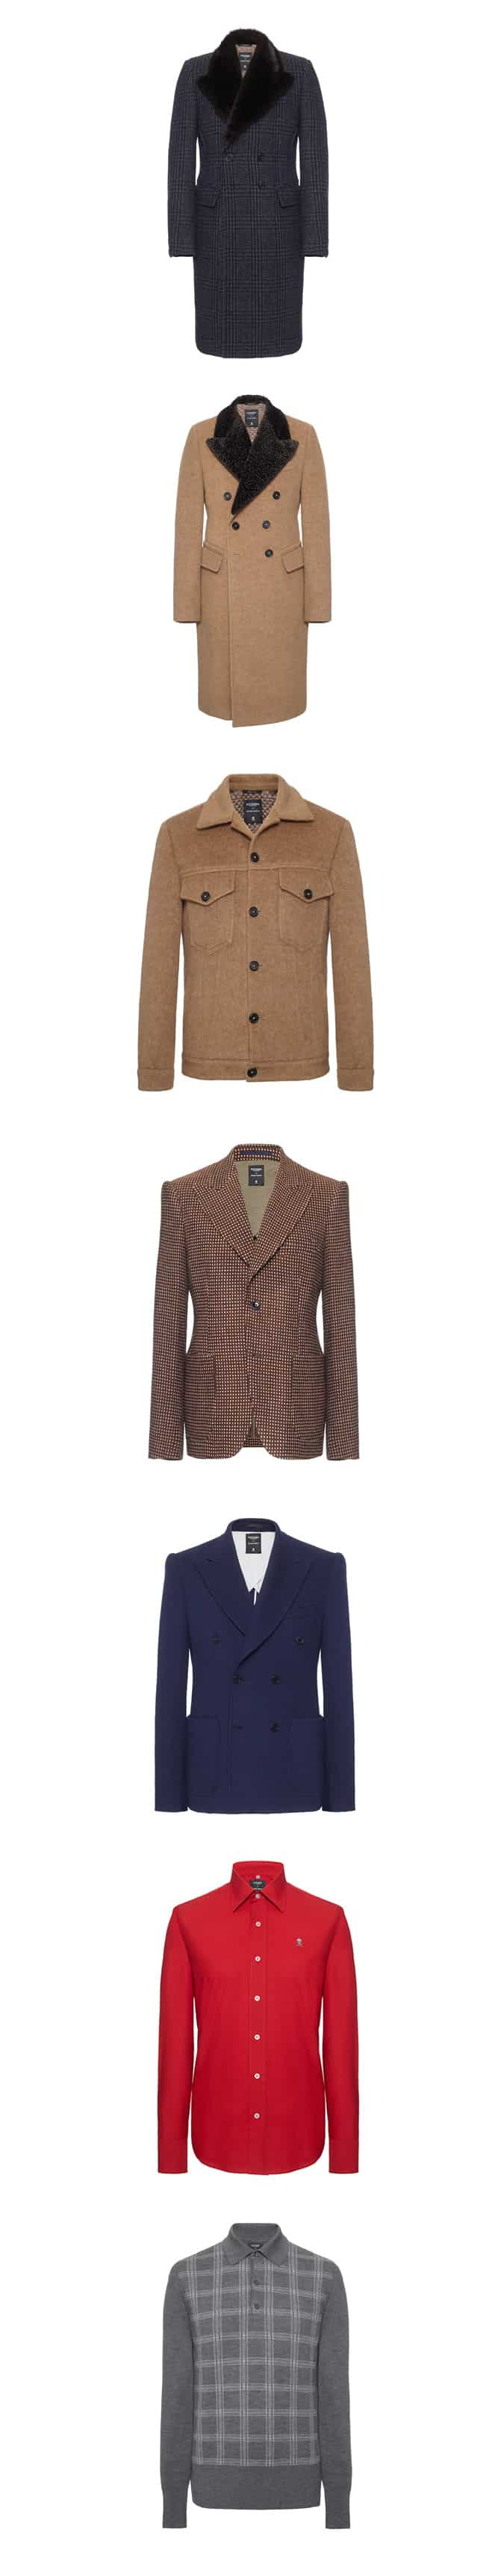 Nutters of Savile Row x Peter Werth Collection